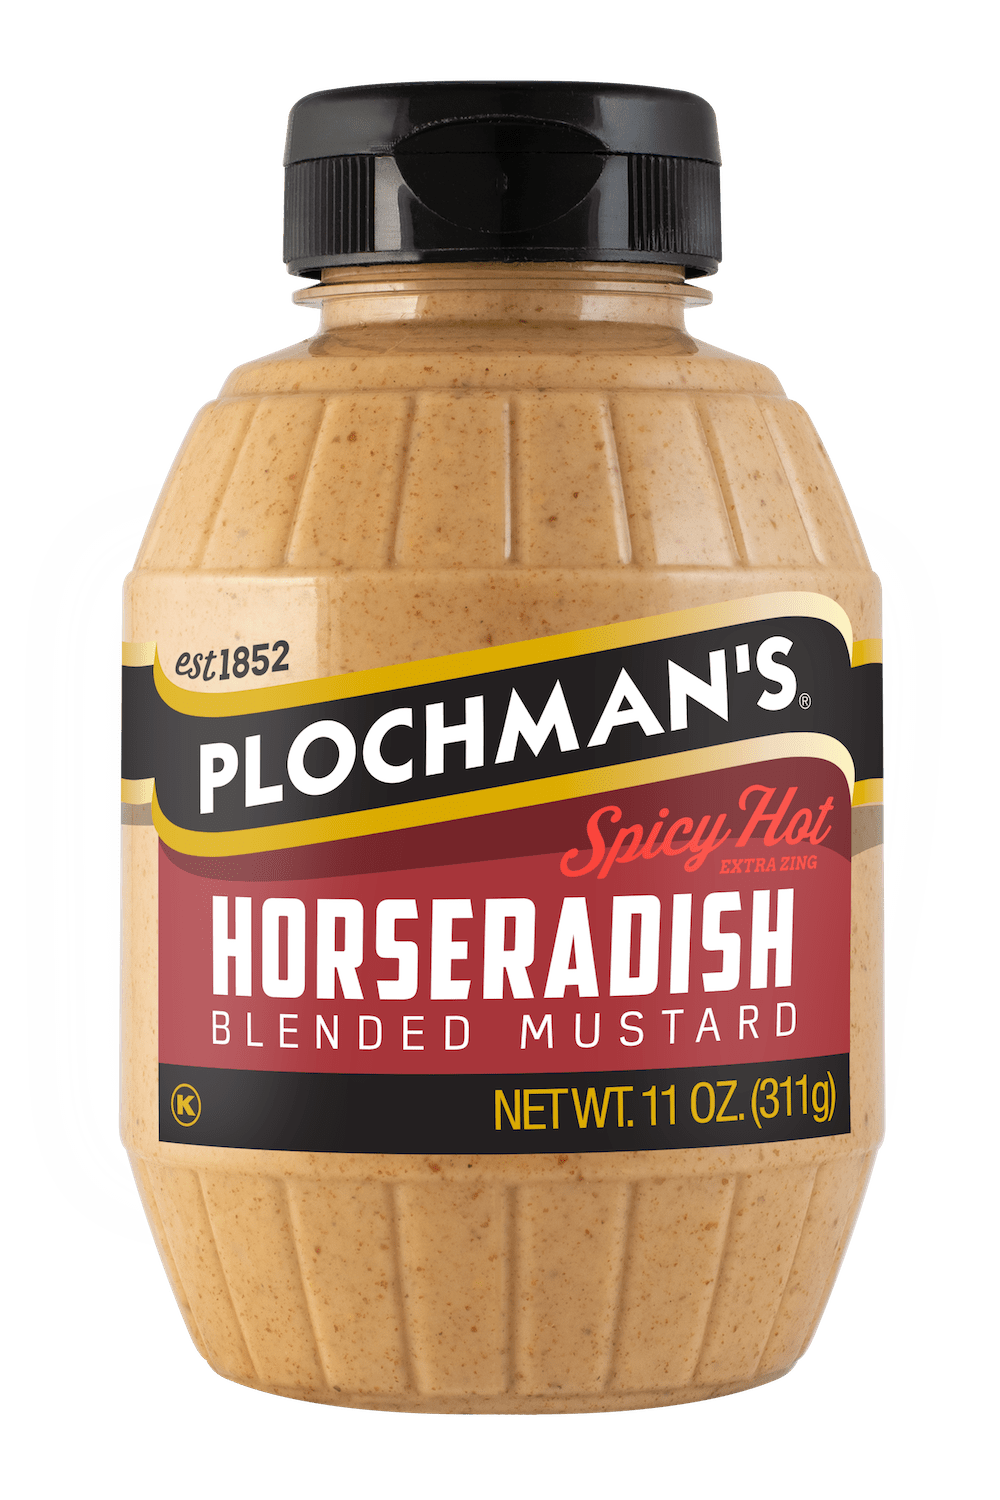 Plochman's Spicy Hot Blended Horseradish Mustard